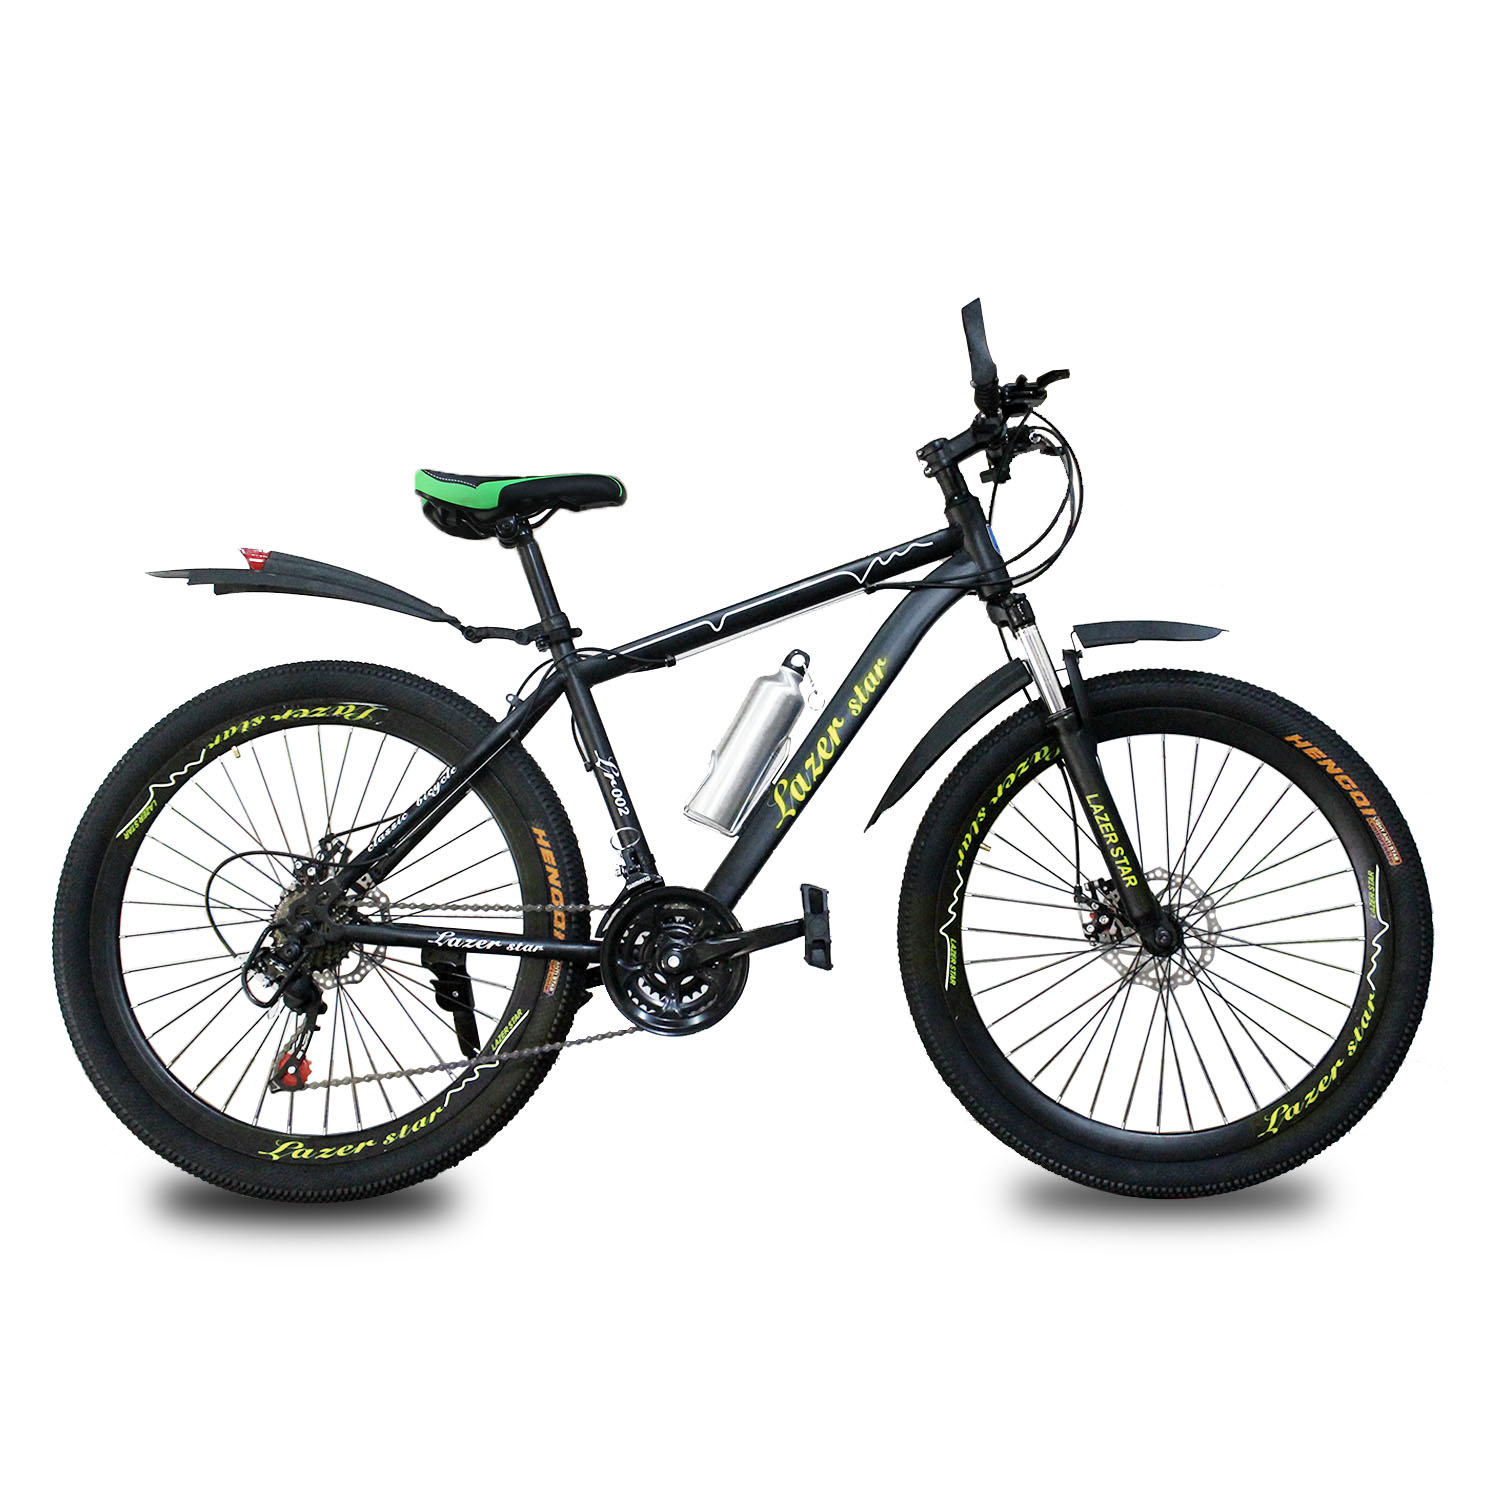 New 2020 model LAZER STAR bicycle/cycle/BMX/ mountain Bike for boys 26 inch made in Taiwan 10 Gears  body original with shocks and two years warranty color Yellow